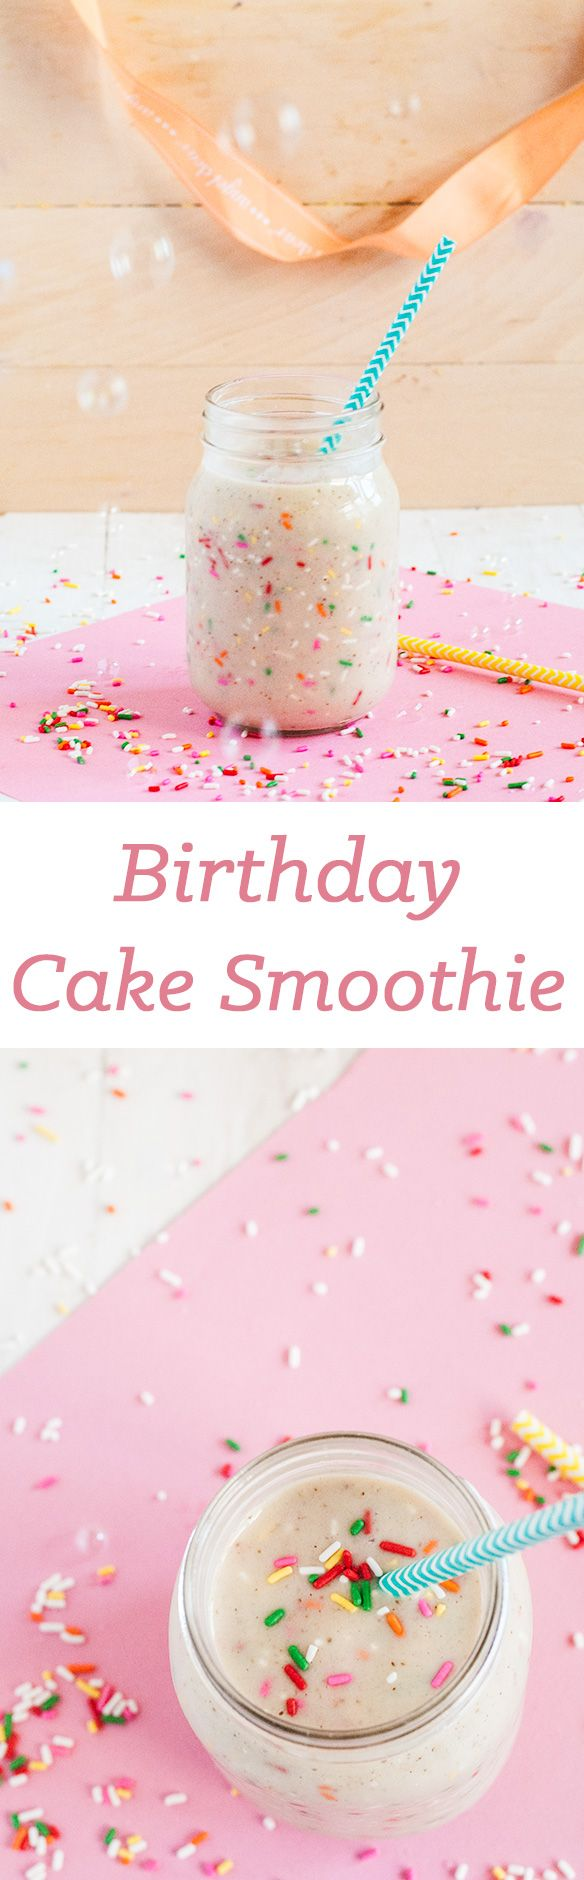 Birthday cake smoothie - a healthy and delicious way to begin any morning. Cause it's someone's birthday today, right?